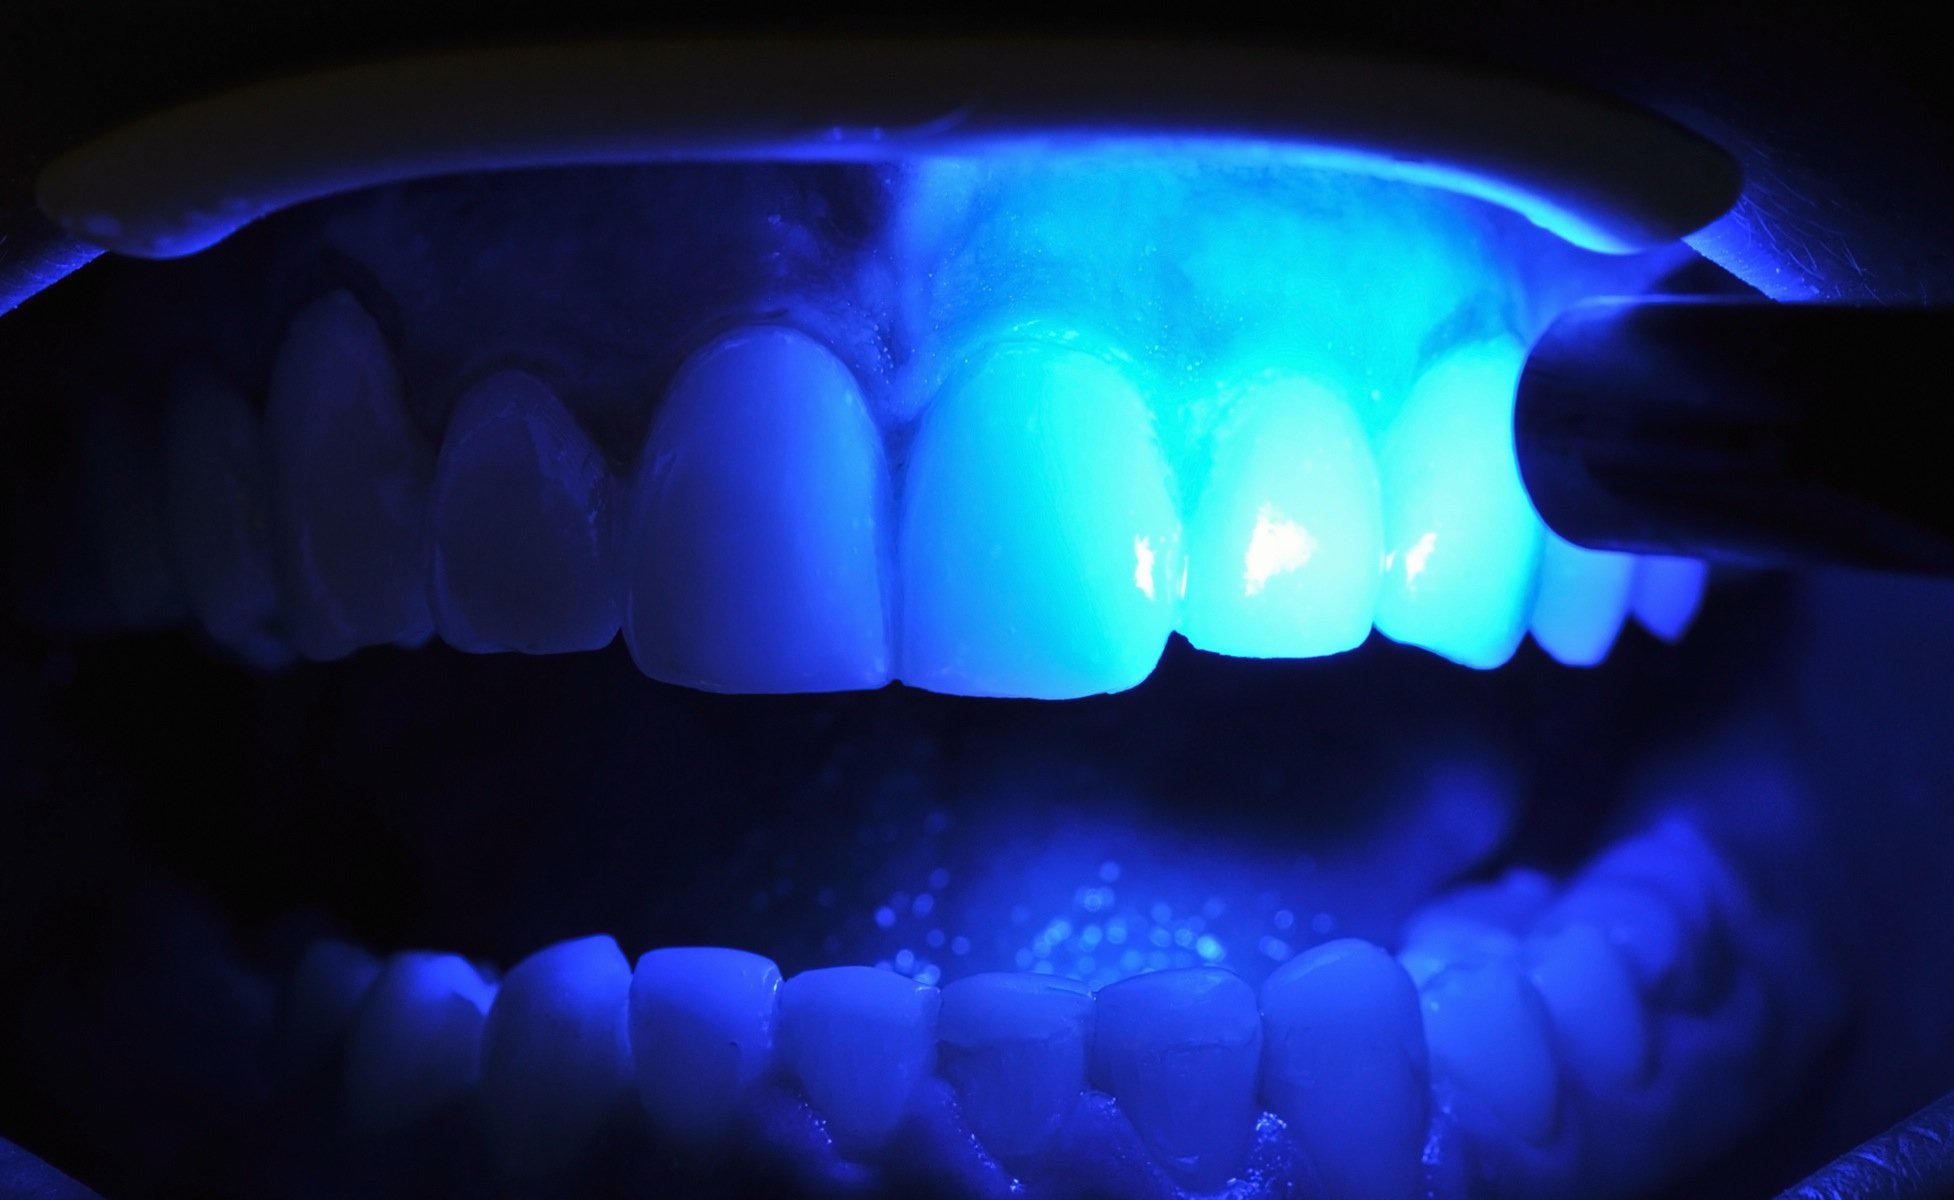 Ultraviolet Light Shining on Person's Teeth